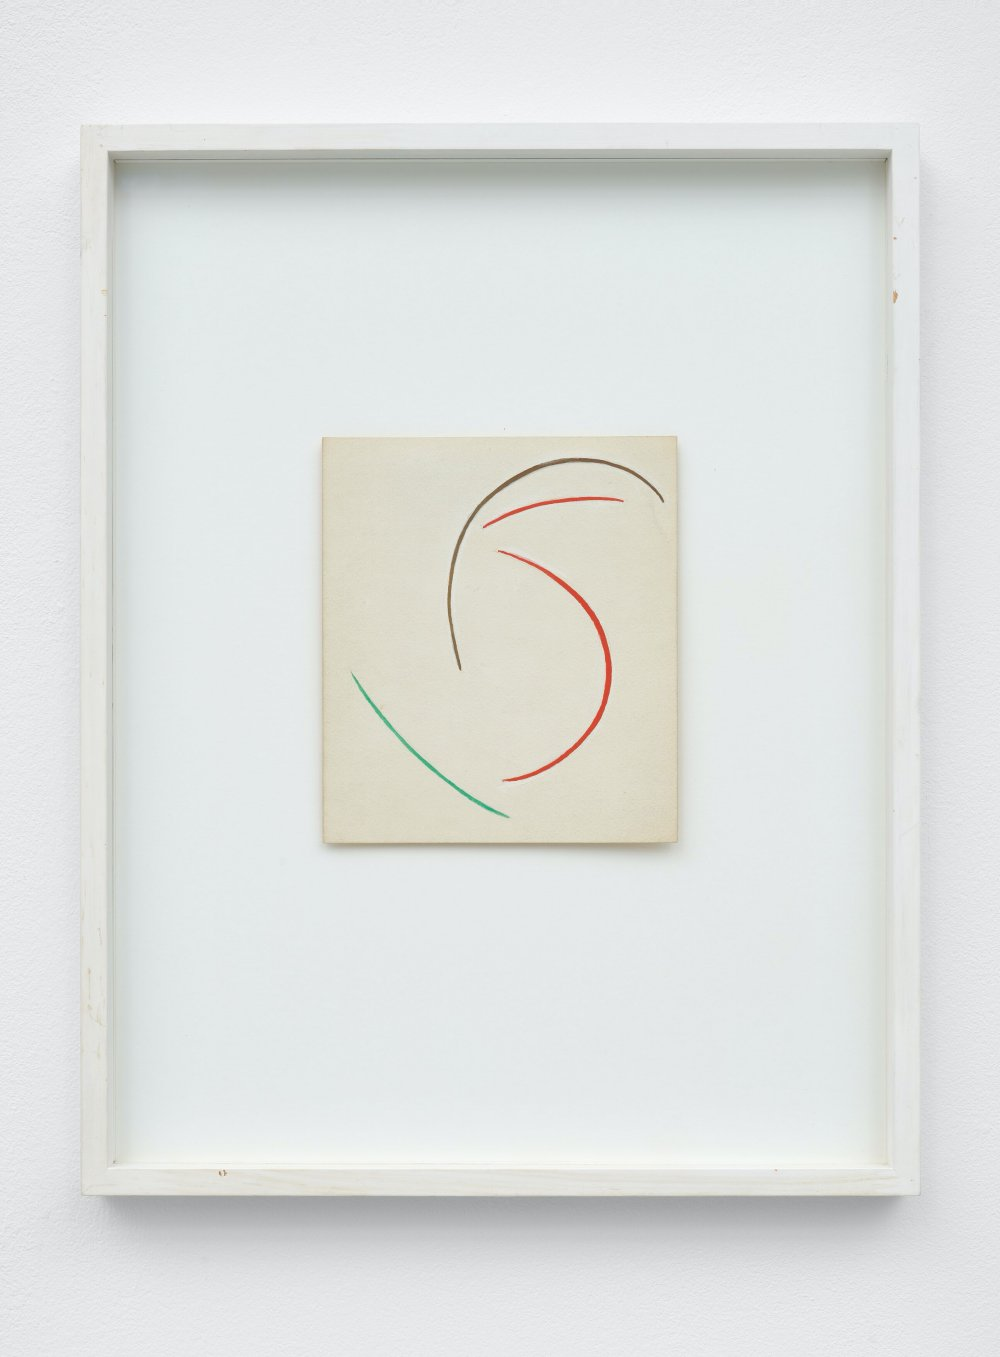 Study for 'Fonction de courbes' (Function of curves)